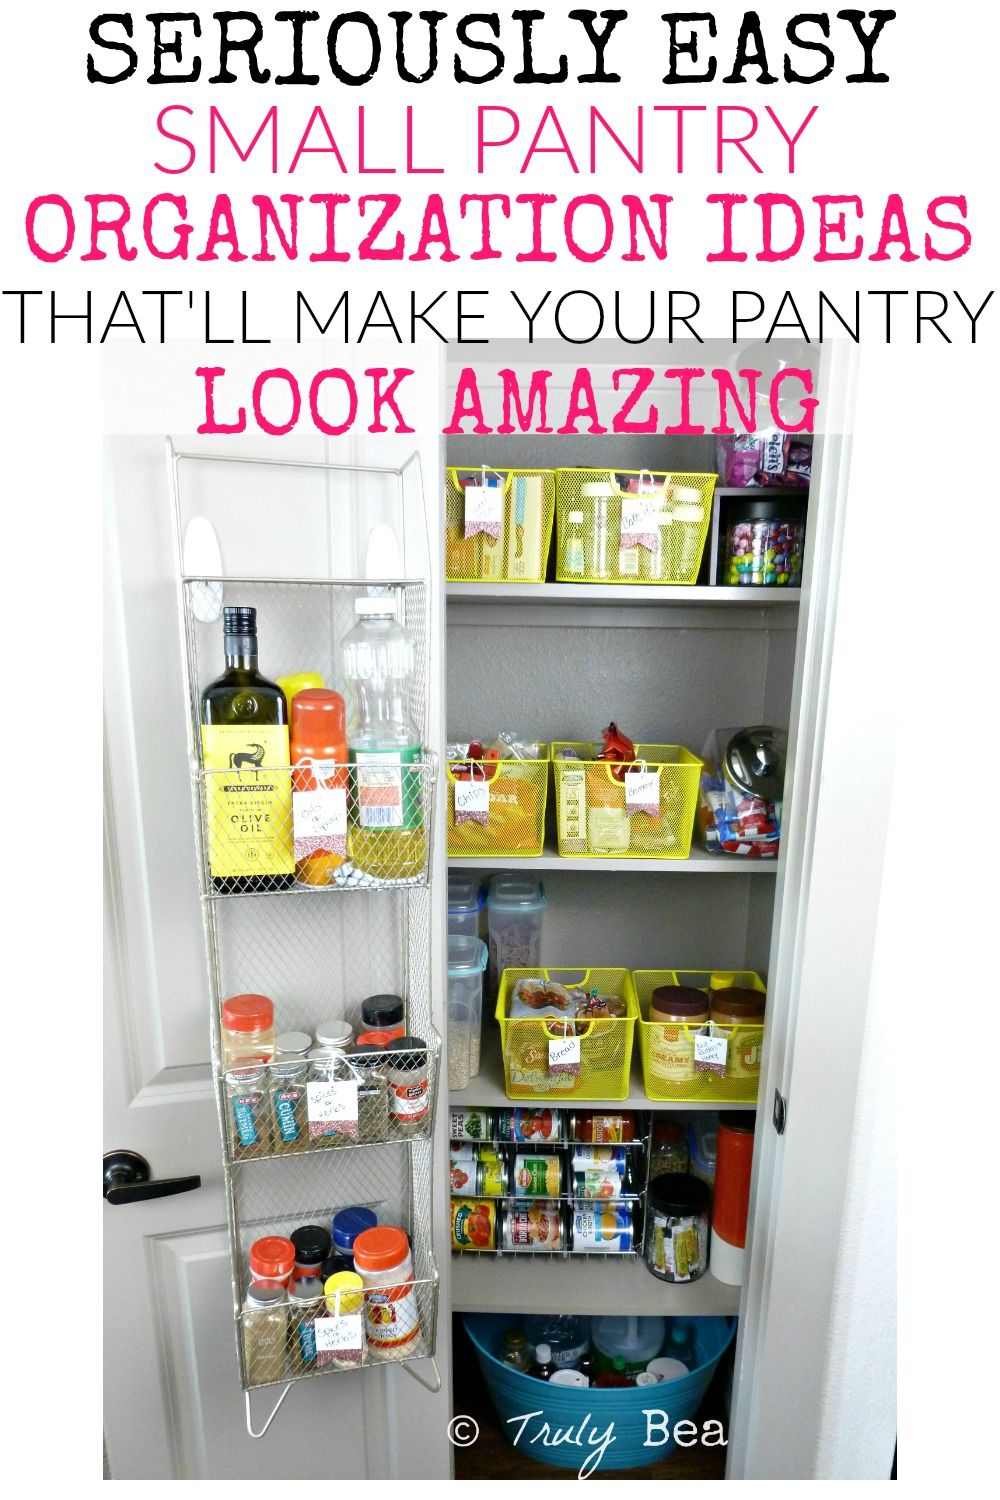 The ultimate diy small pantry organization ideas to make your pantry here is a guide for the ultimate diy small pantry organization ideas to make your pantry look amazing get the help you need organize your pantry yourself solutioingenieria Gallery